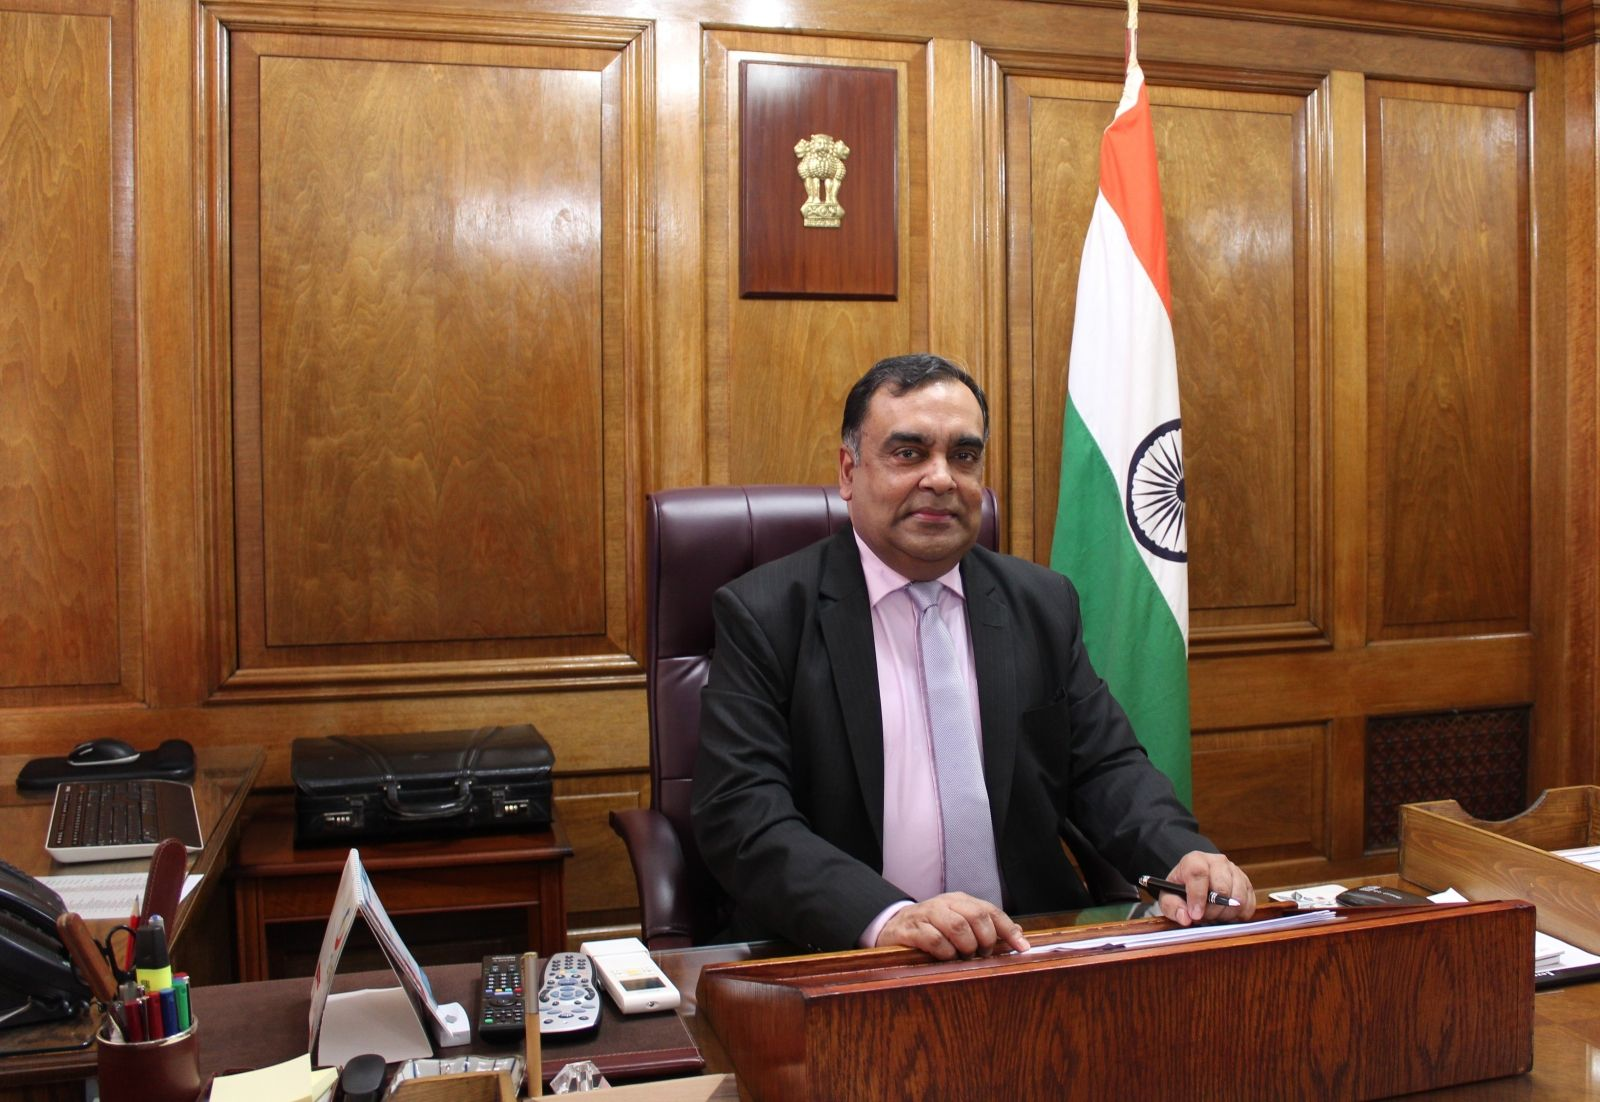 Brexit an opportunity to 'reset and accentuate' UKIndia